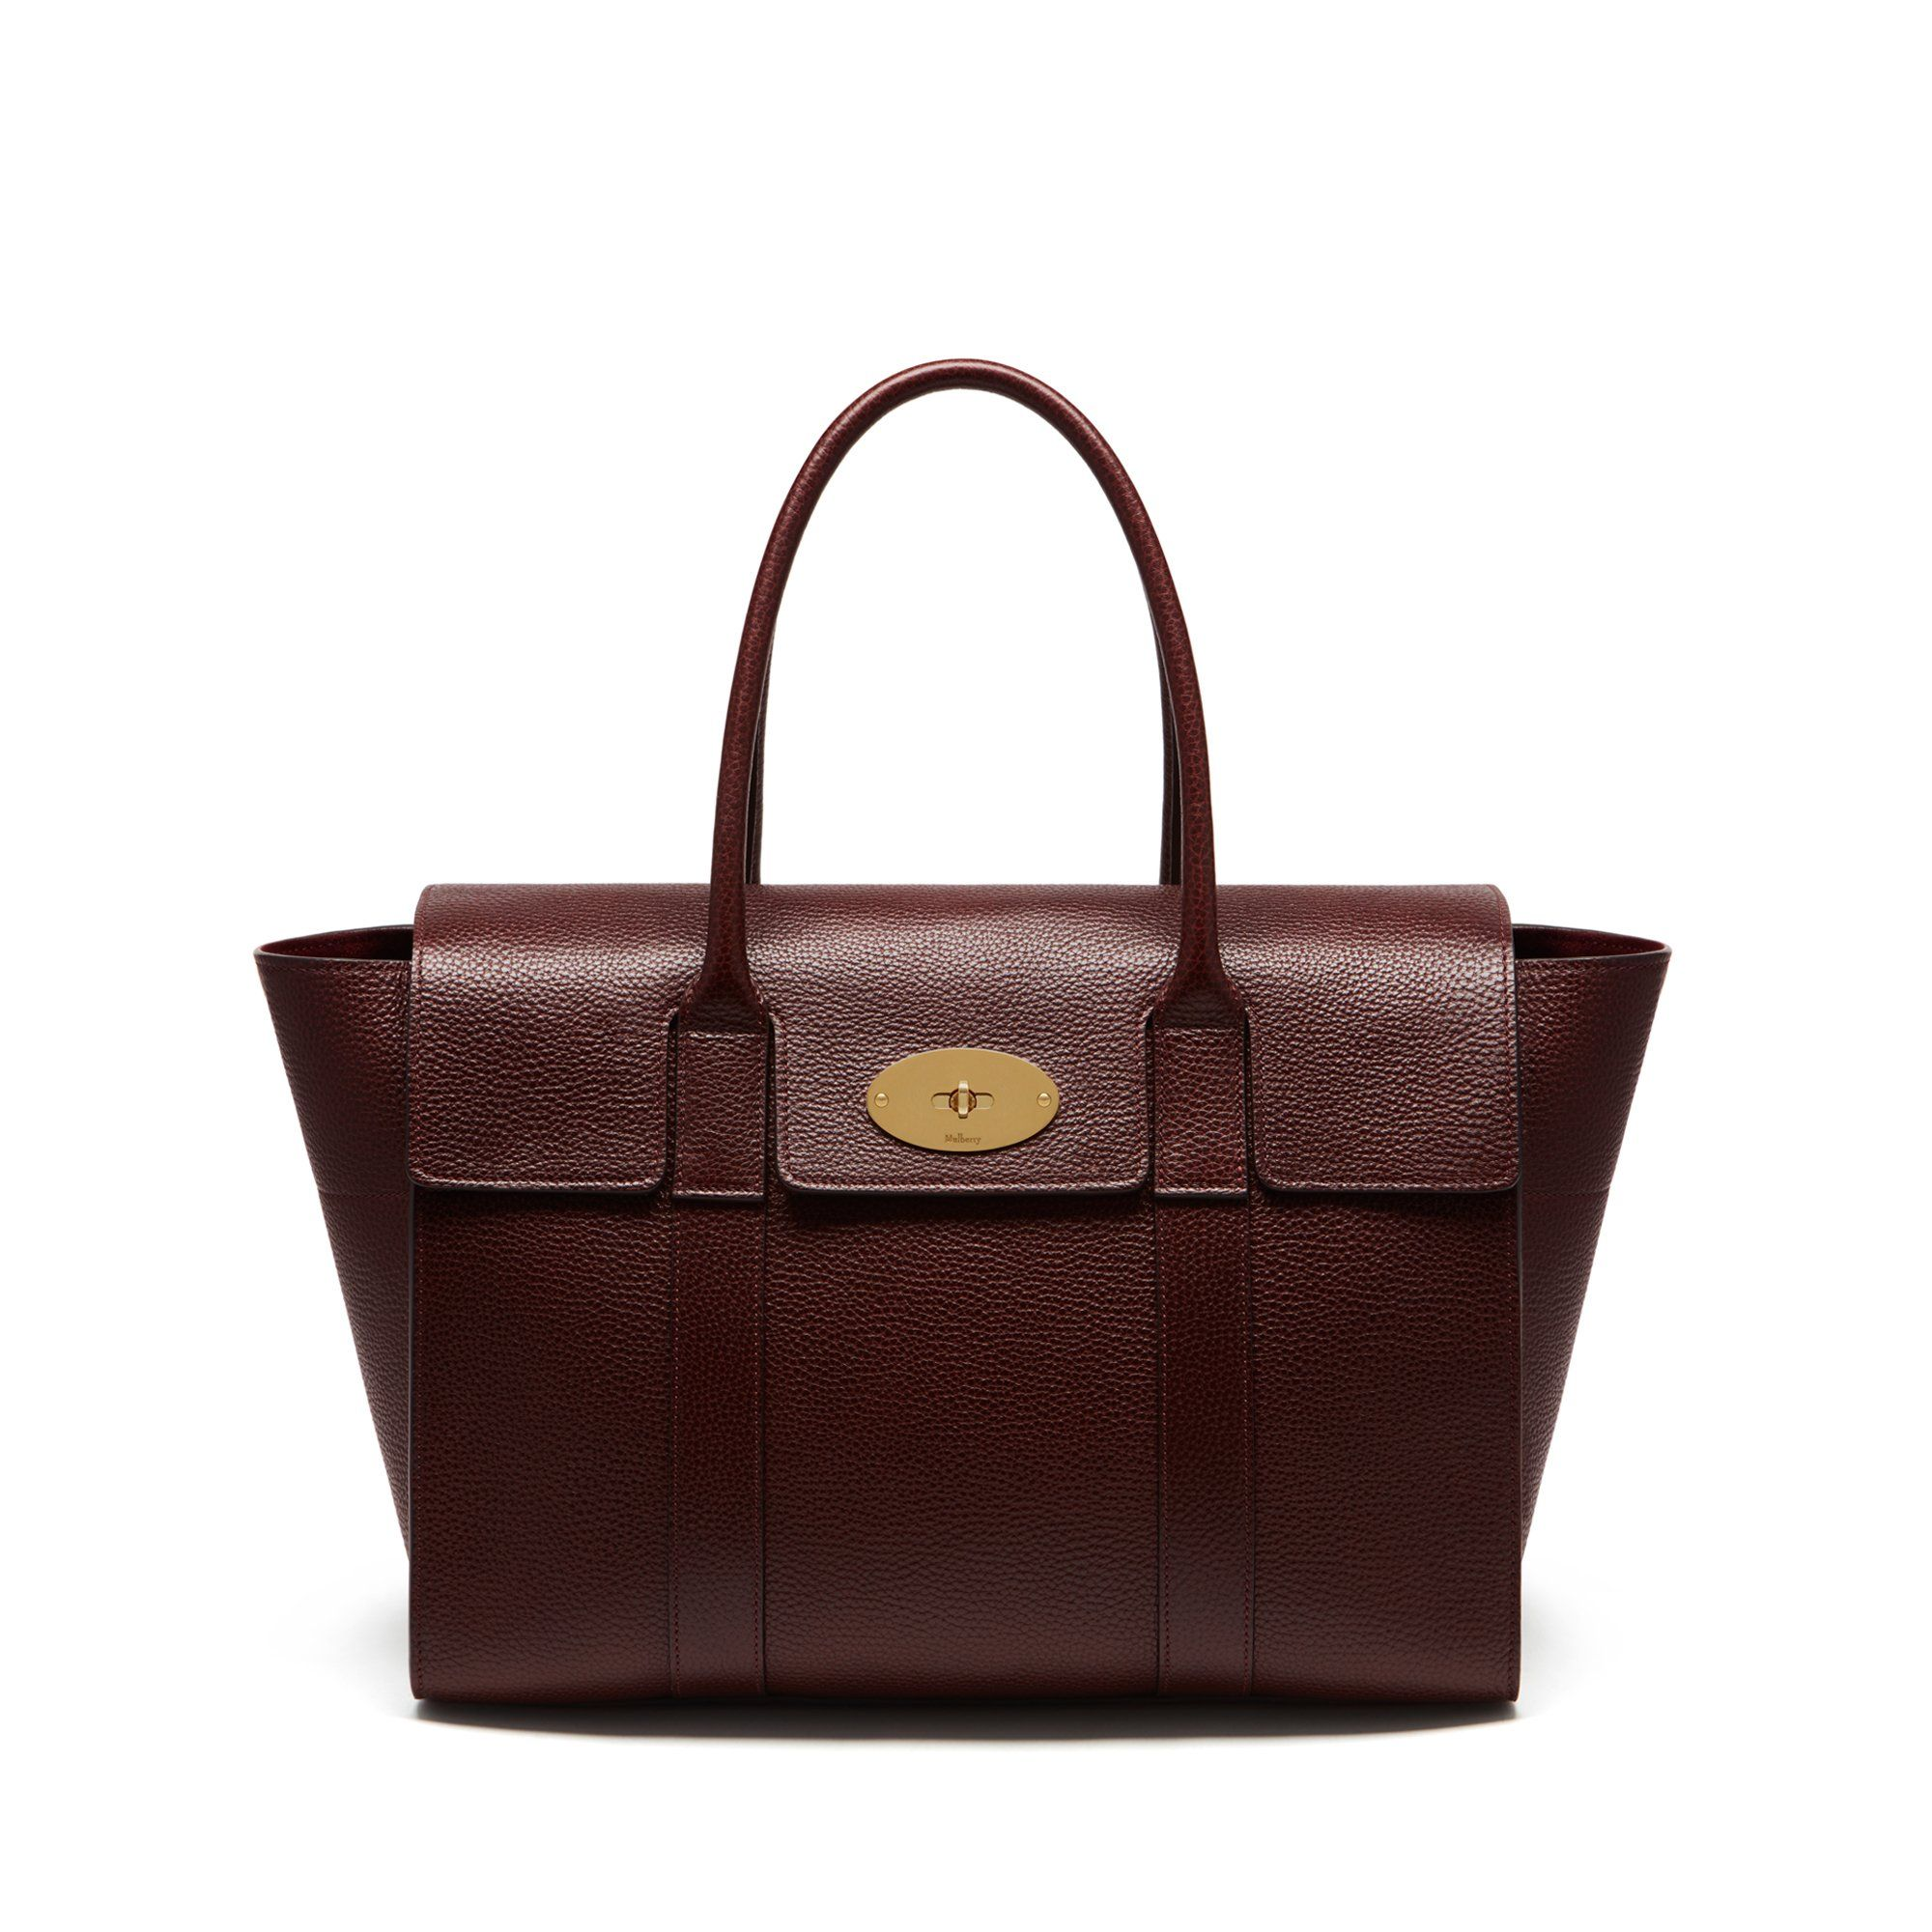 Shop The Mulberry Sale Now Before It's Too Late picture